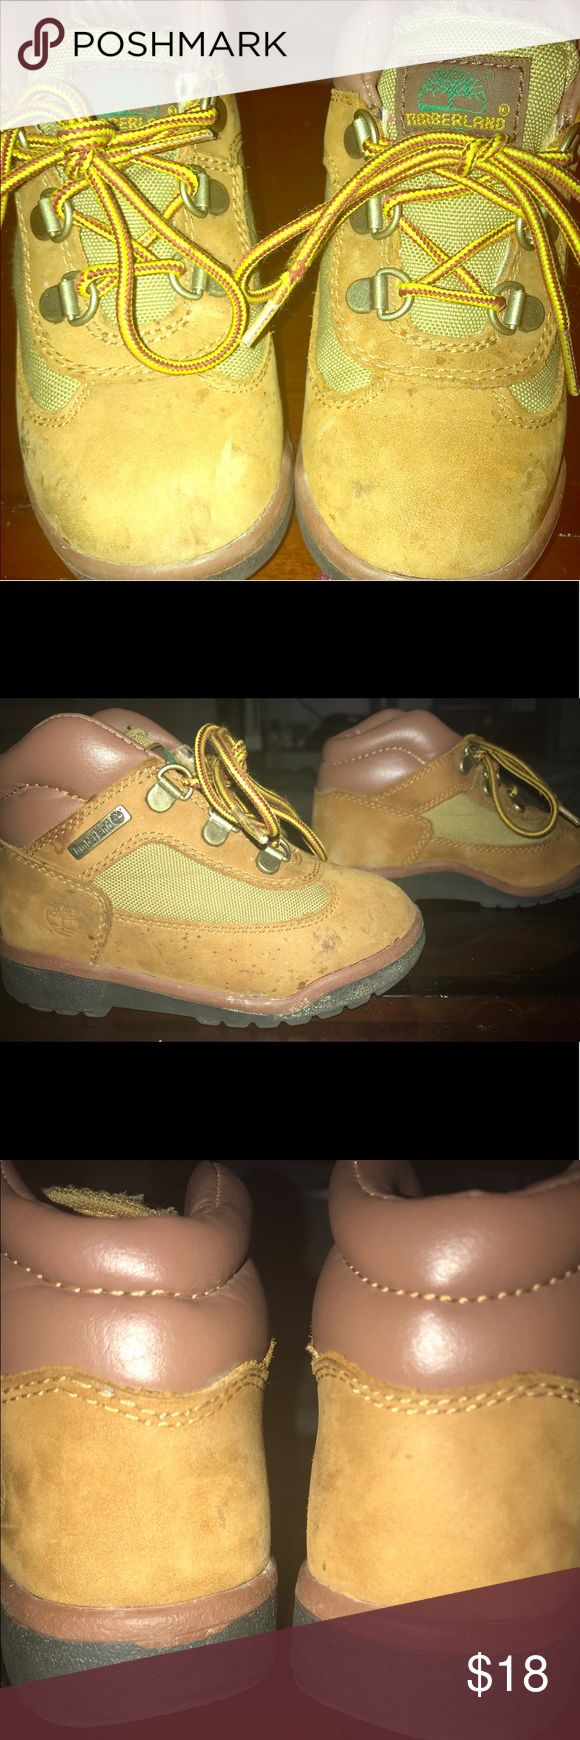 Size 9.5 Toddler Timberland Boots Size 9.5 Toddler Timberland Boots - These boots are in good shape, minor spots on the sides from wearing outside. But they should last your Toddler all winter! Timberland Shoes Boots